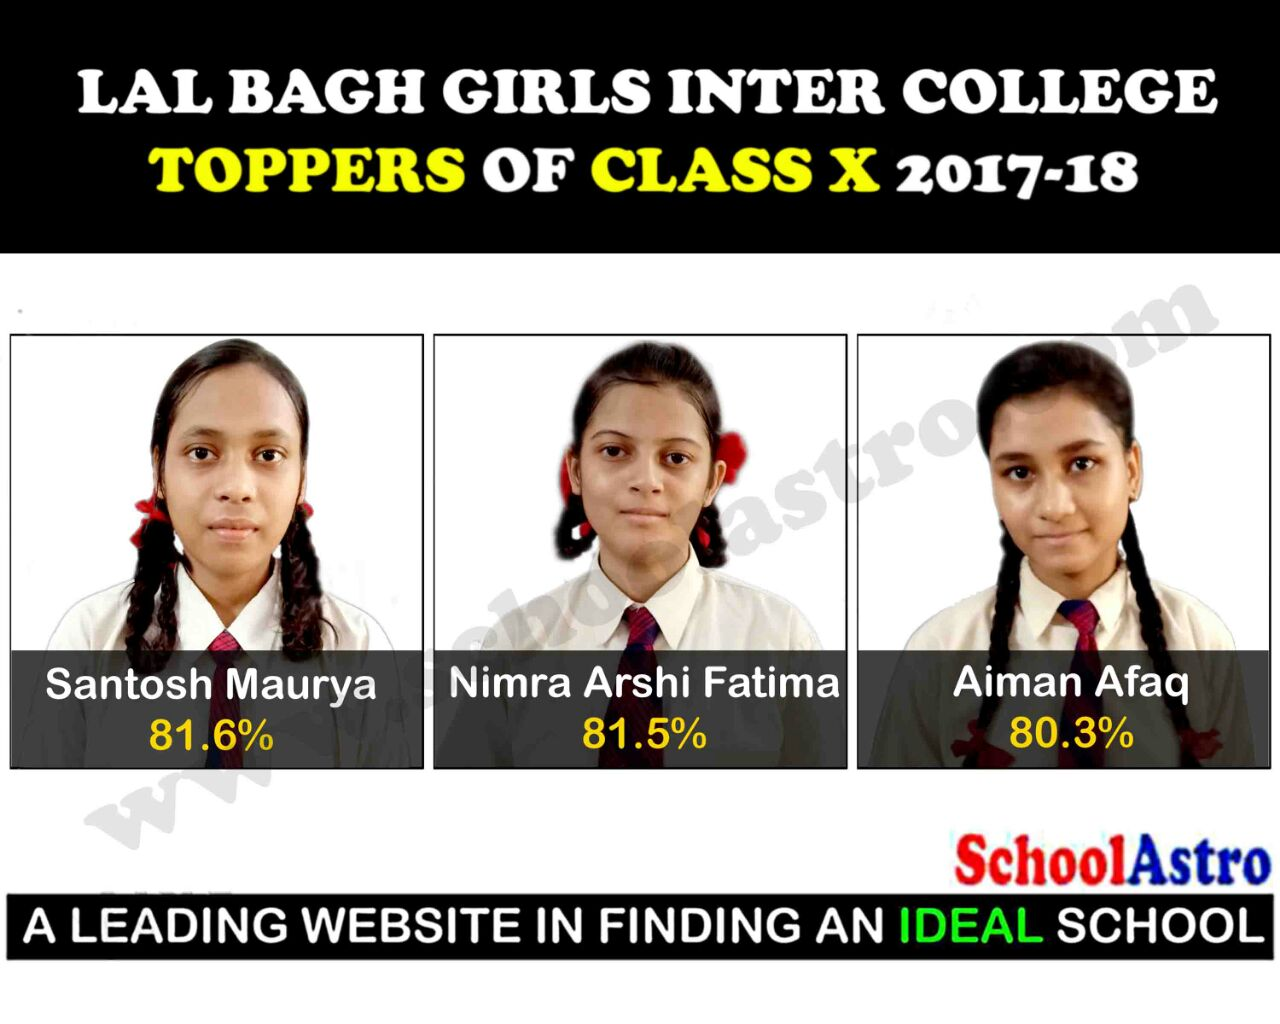 SUCCESS STORY OF LALBAGH GIRLS INTER COLLEGE